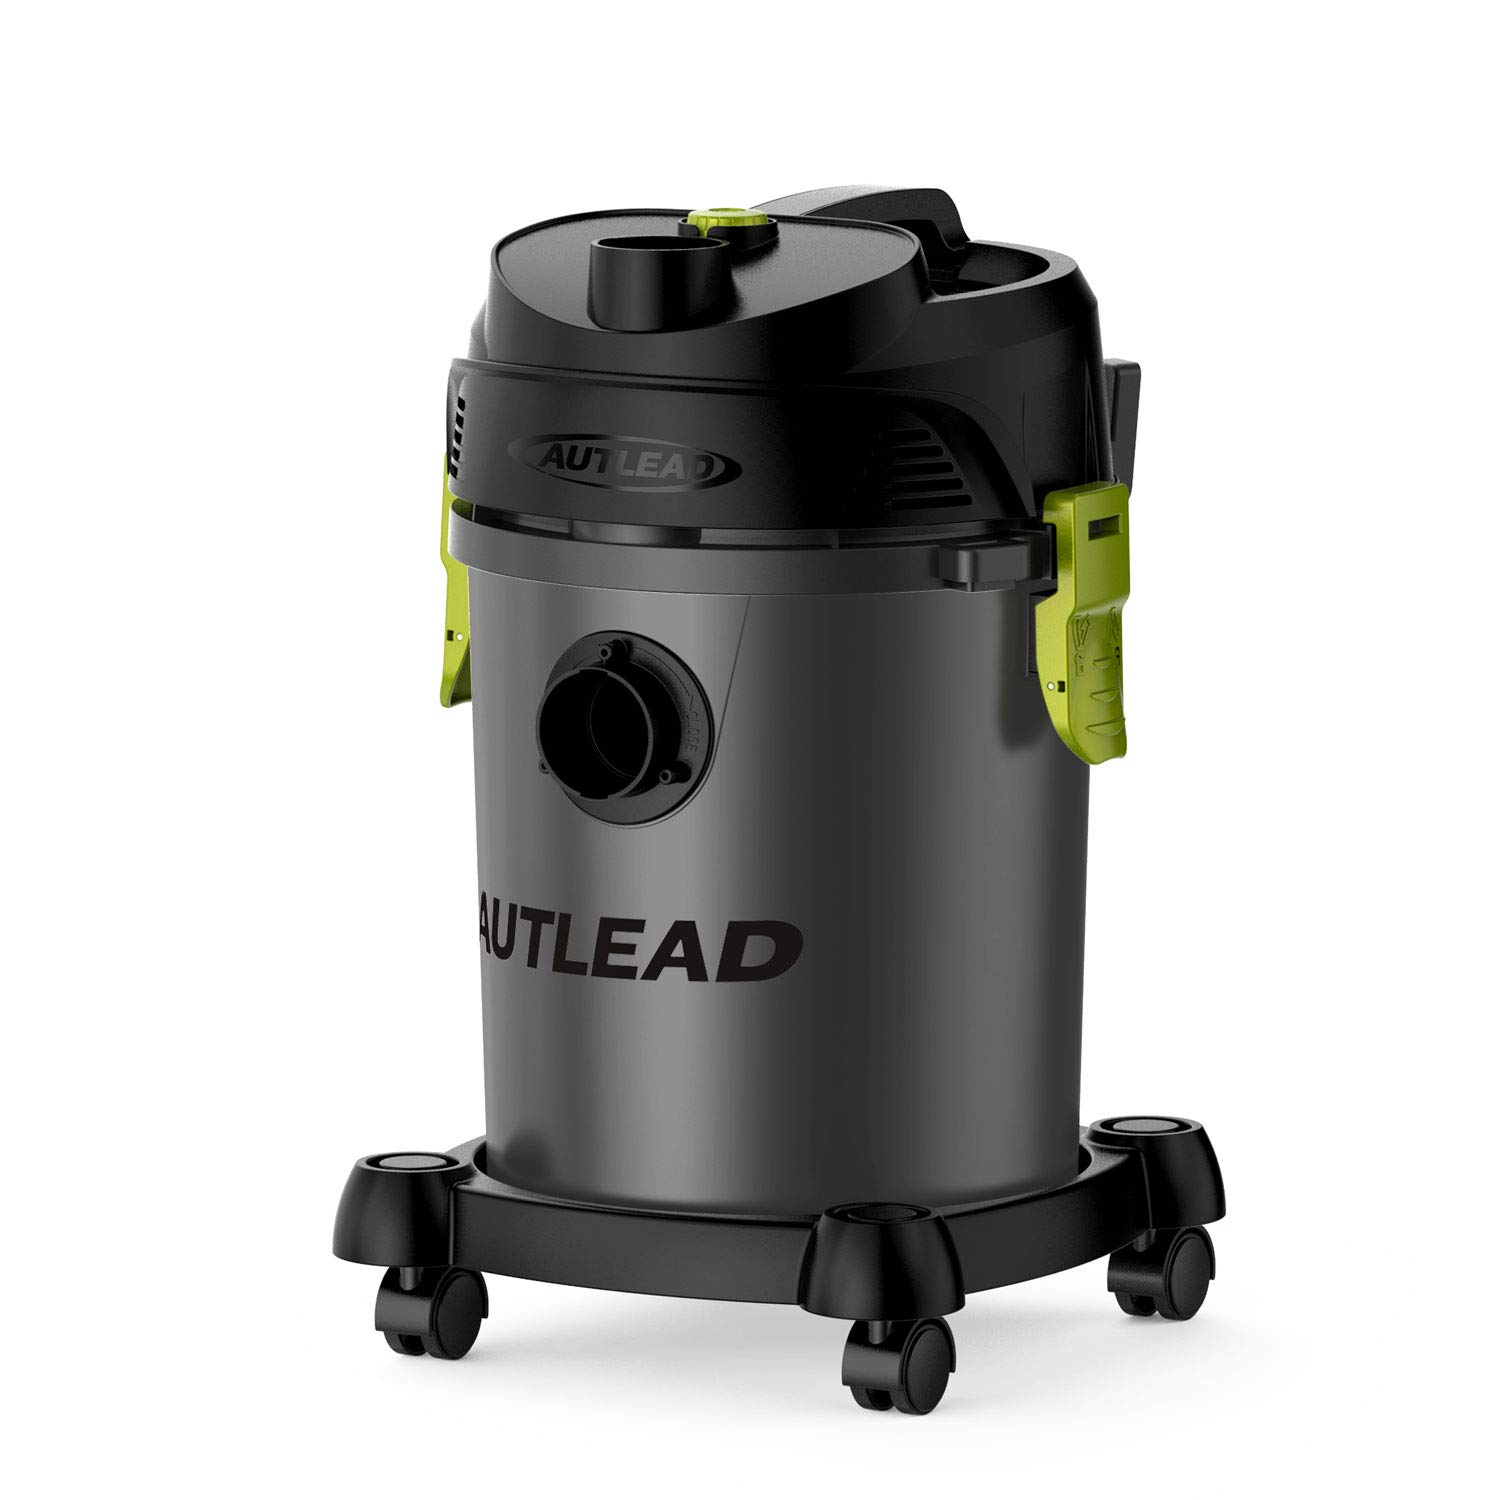 AUTLEAD Wet Dry Vacuum WDS02A 5 Gallon Pure Copper Motor 5.5 HP Wet/Dry/Blow 3 in 1 Shop Vac, Stable Round Bucket Design with Pulley System, HEPA Disposable Bag, 3 Brush Included